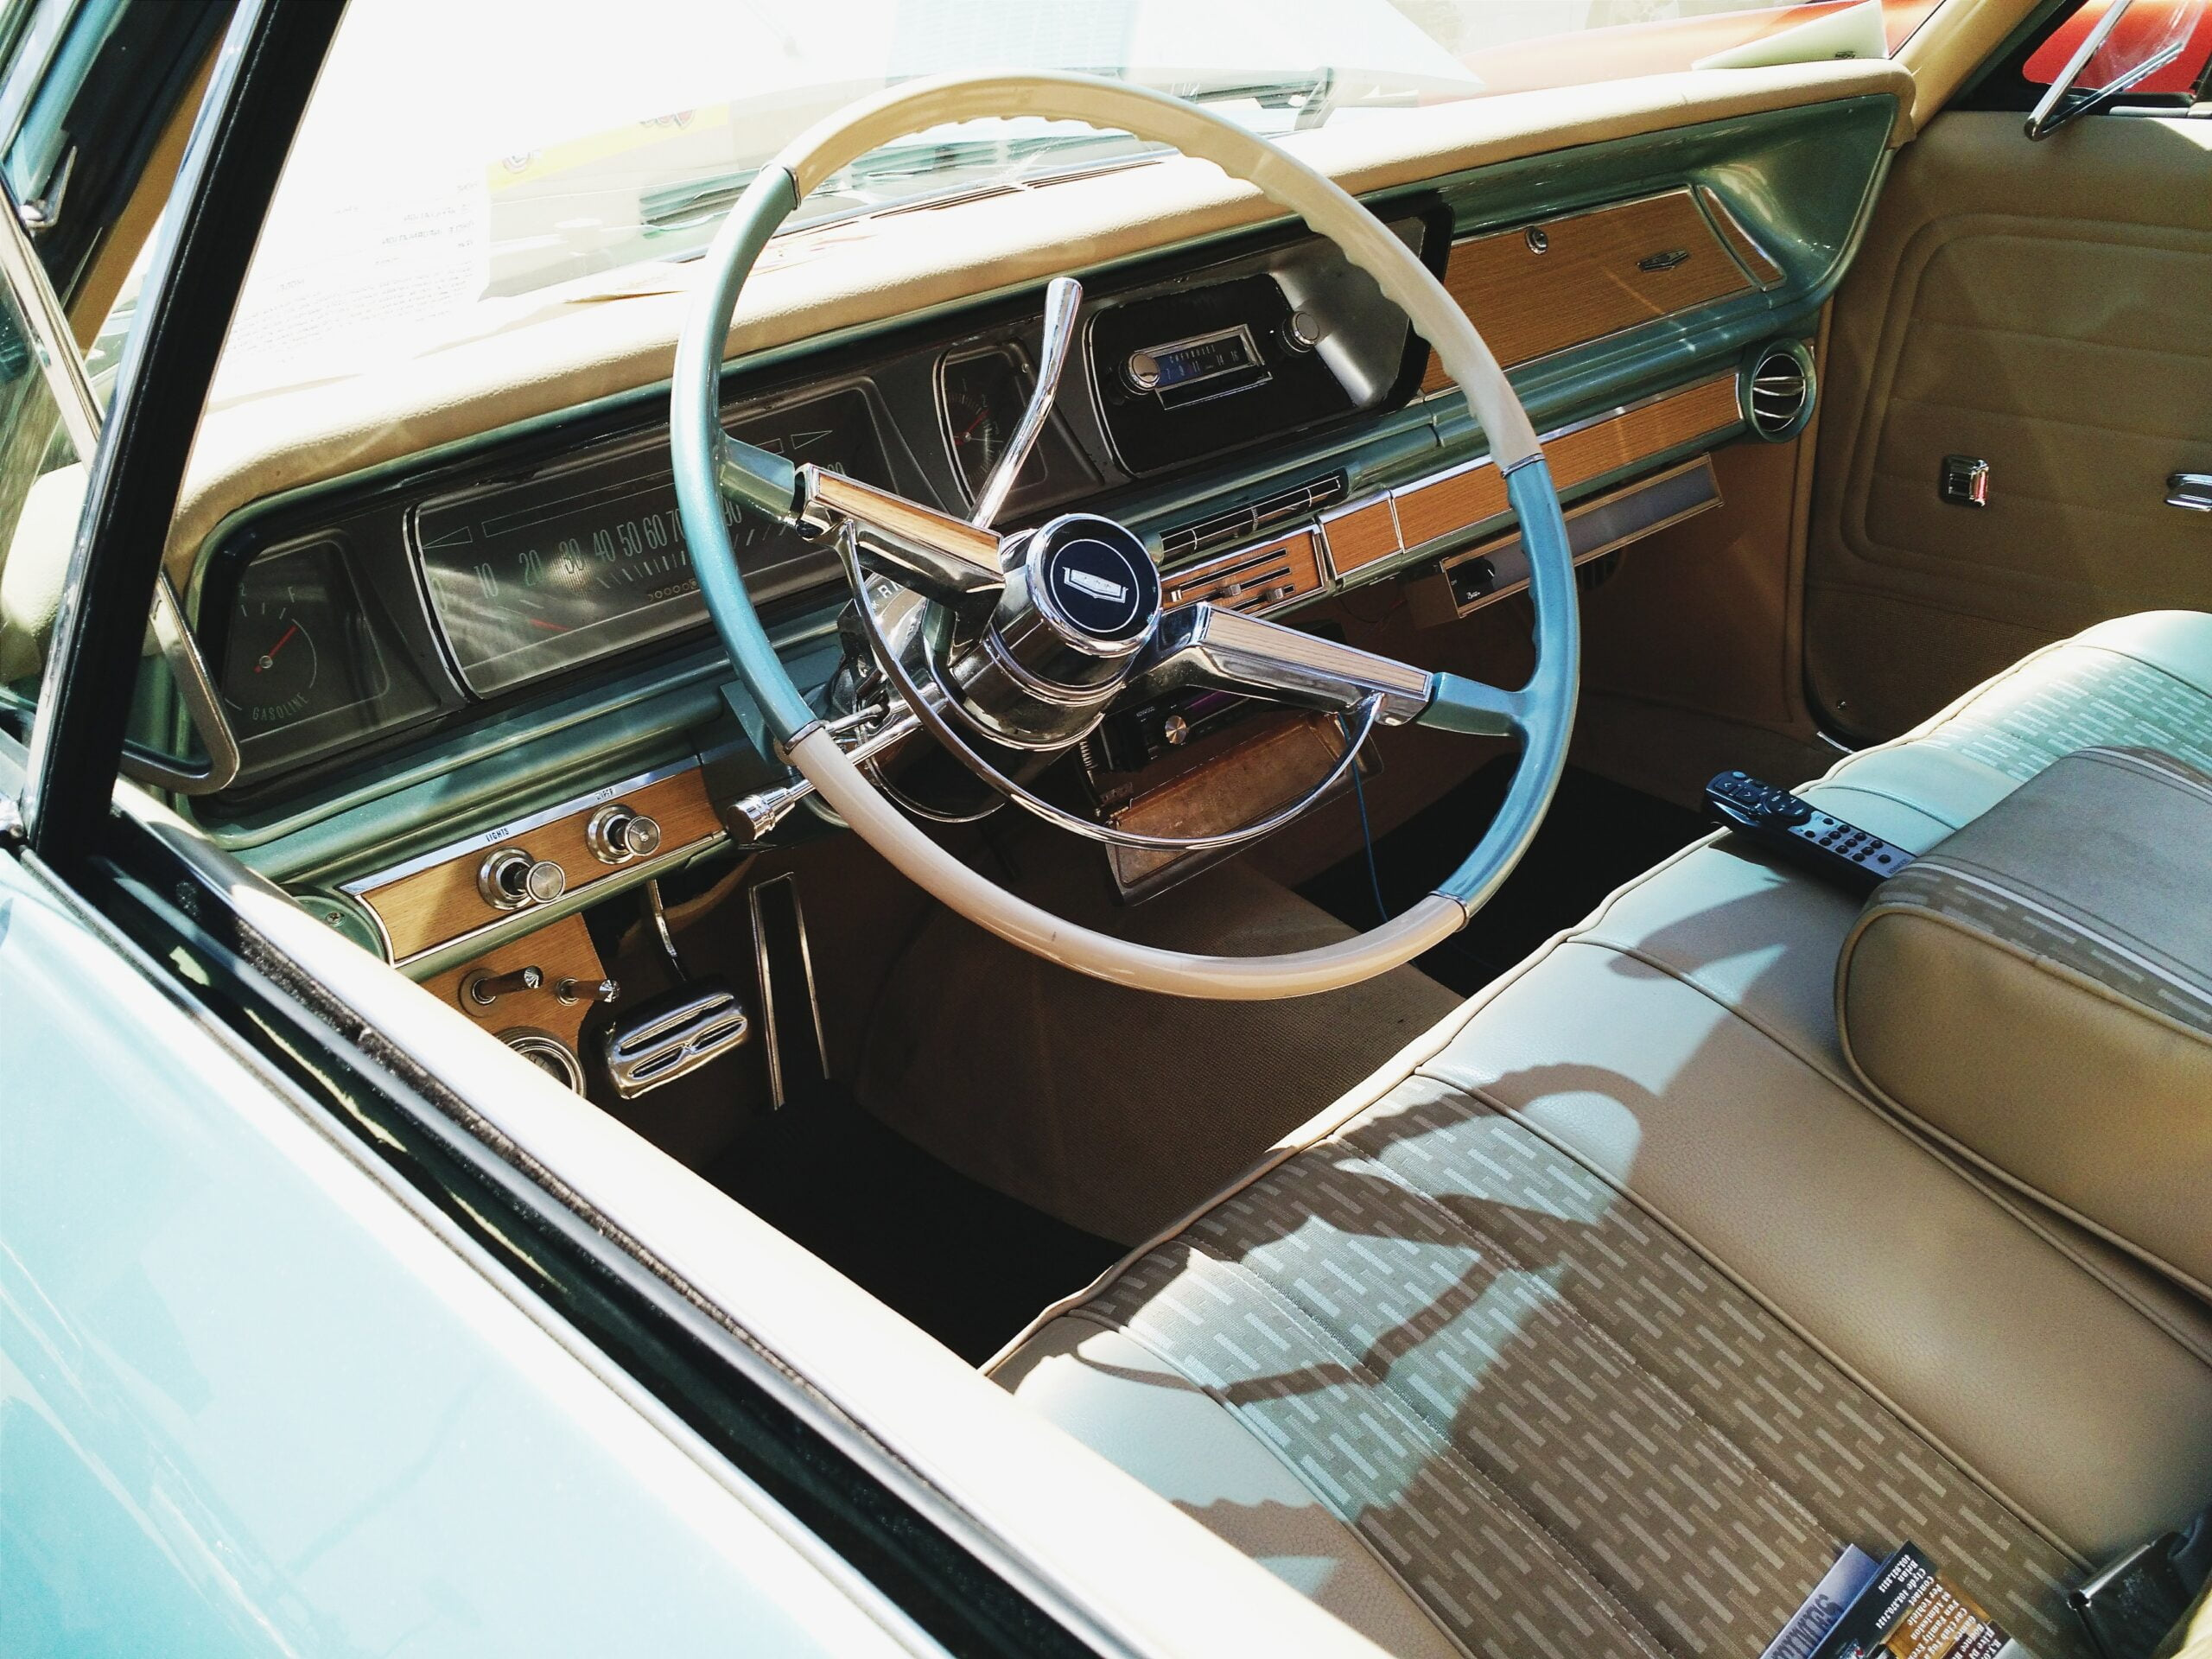 Can Classic Cars be Ergonomic